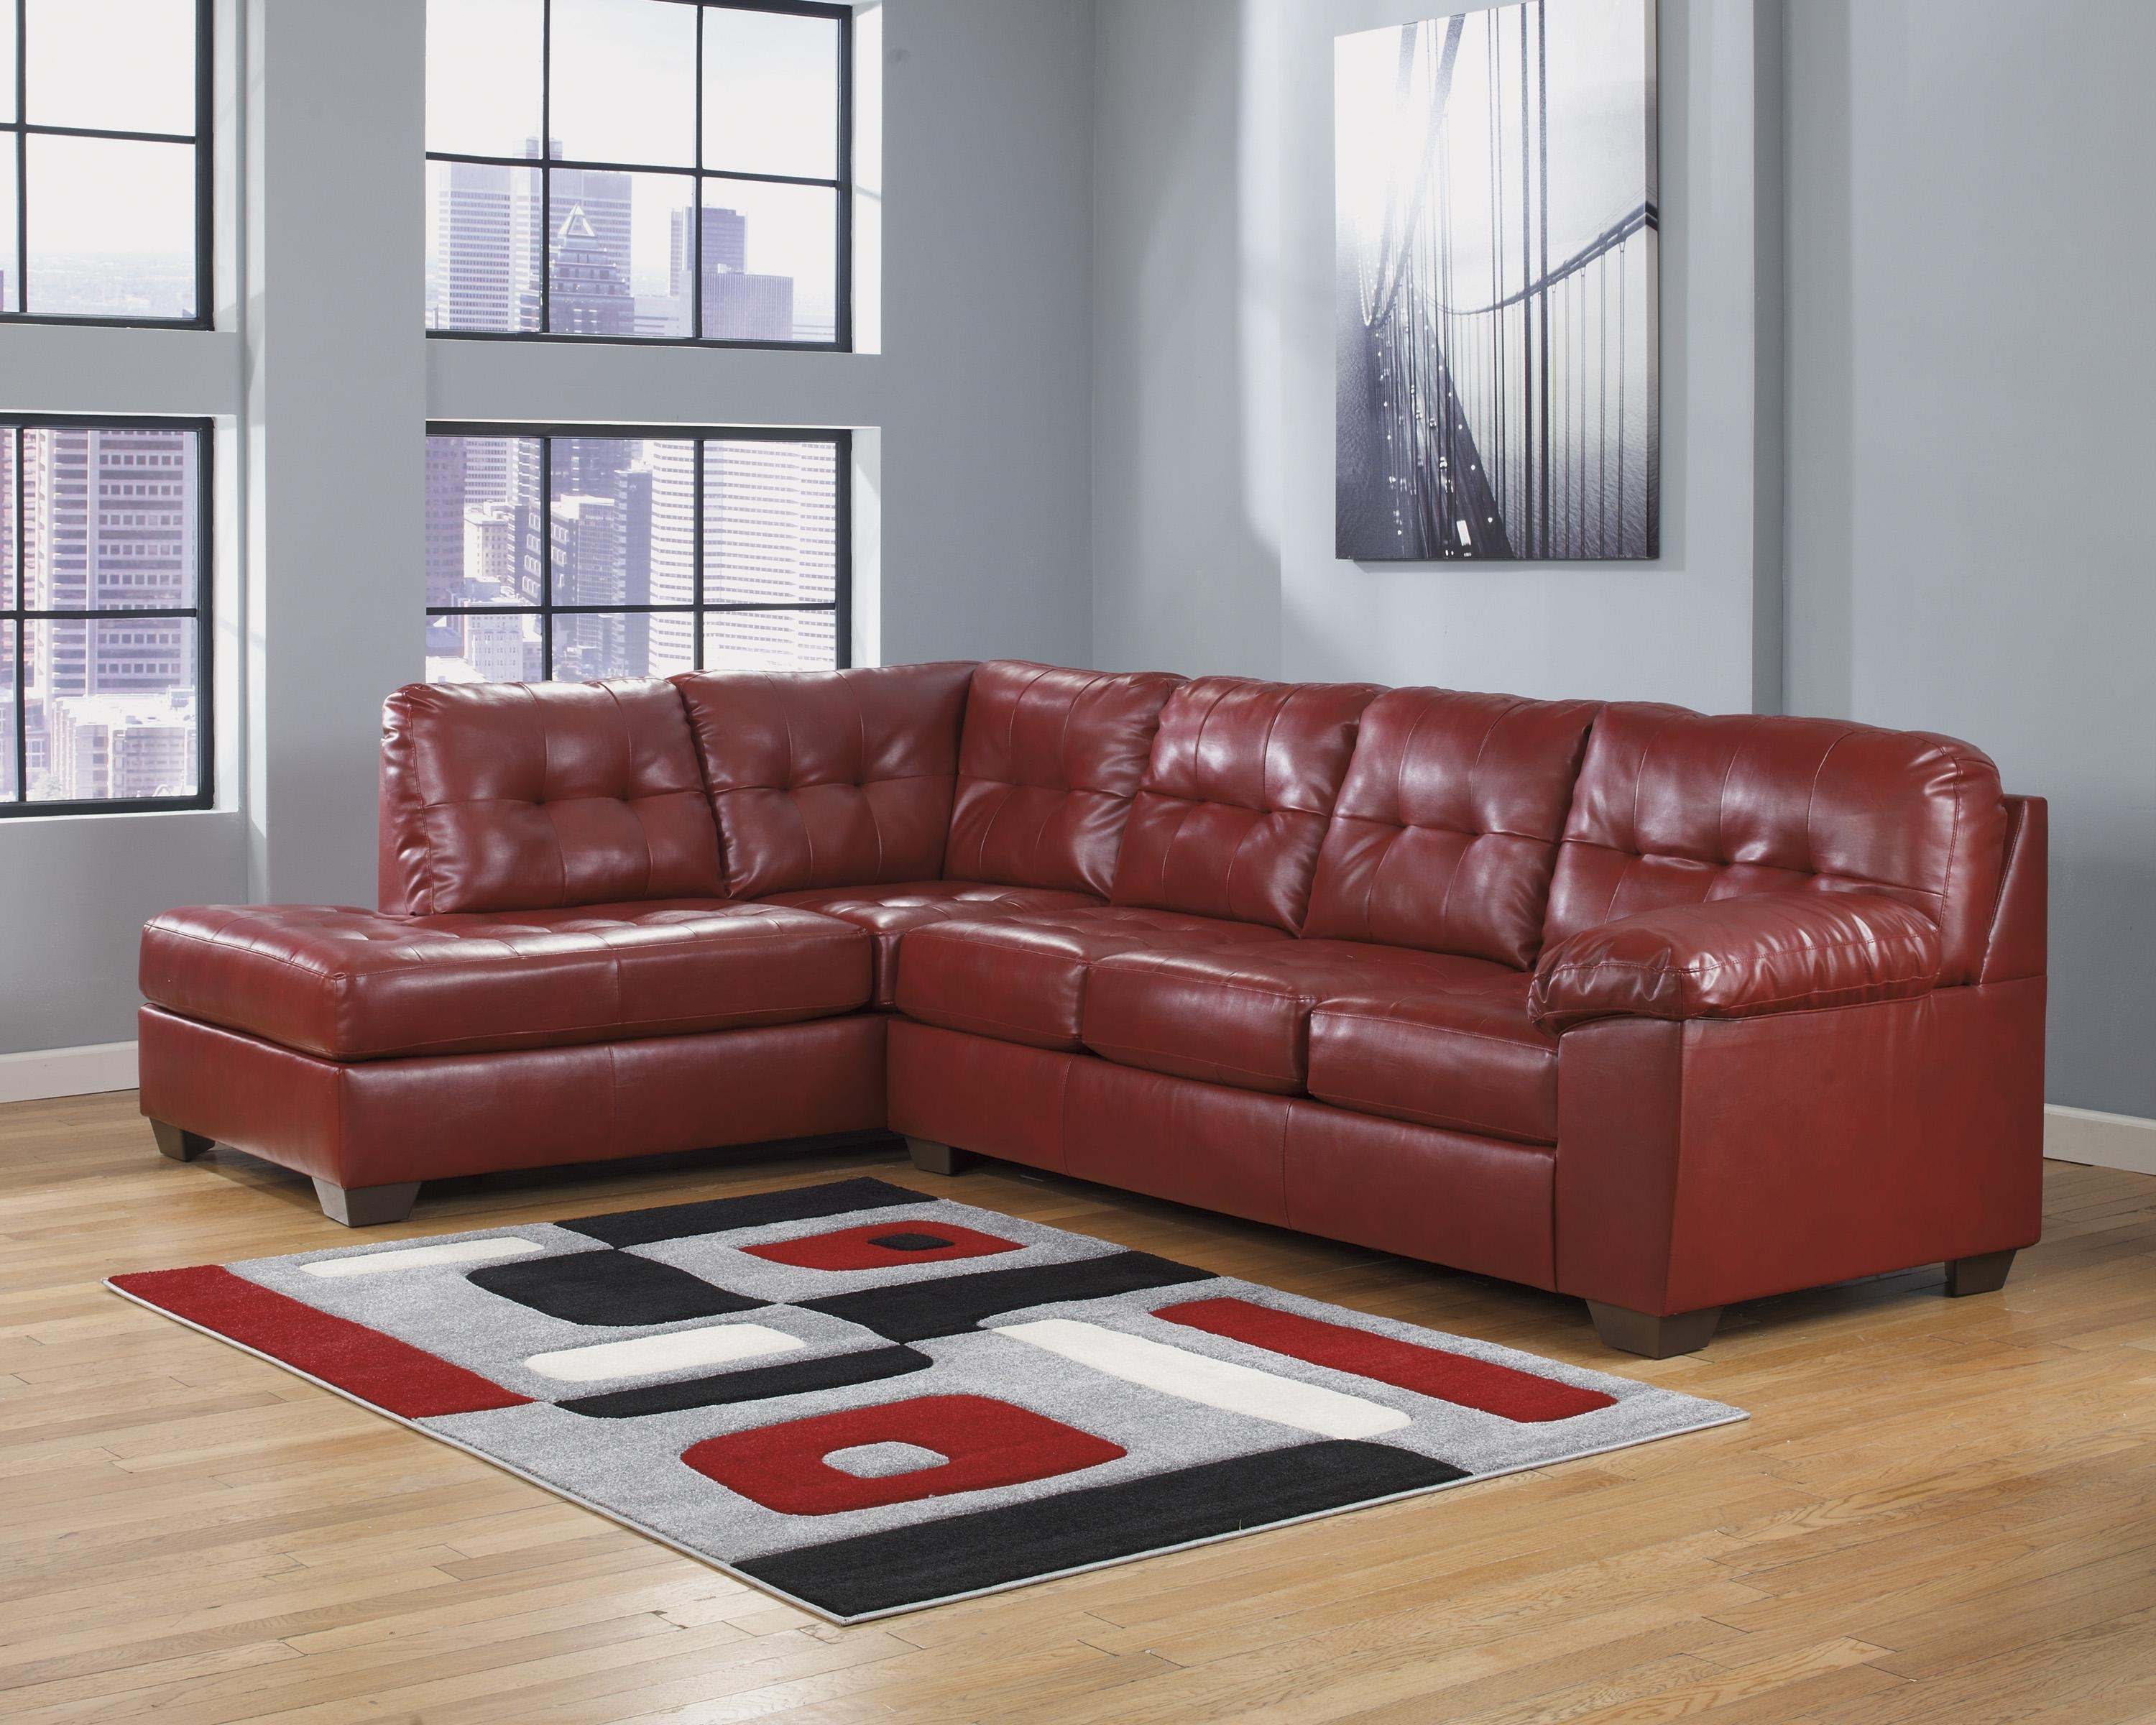 Sectional Sofa Ashley Furniture | Sofa Gallery | Kengire Intended For Ashley Furniture Corduroy Sectional Sofas (View 18 of 20)